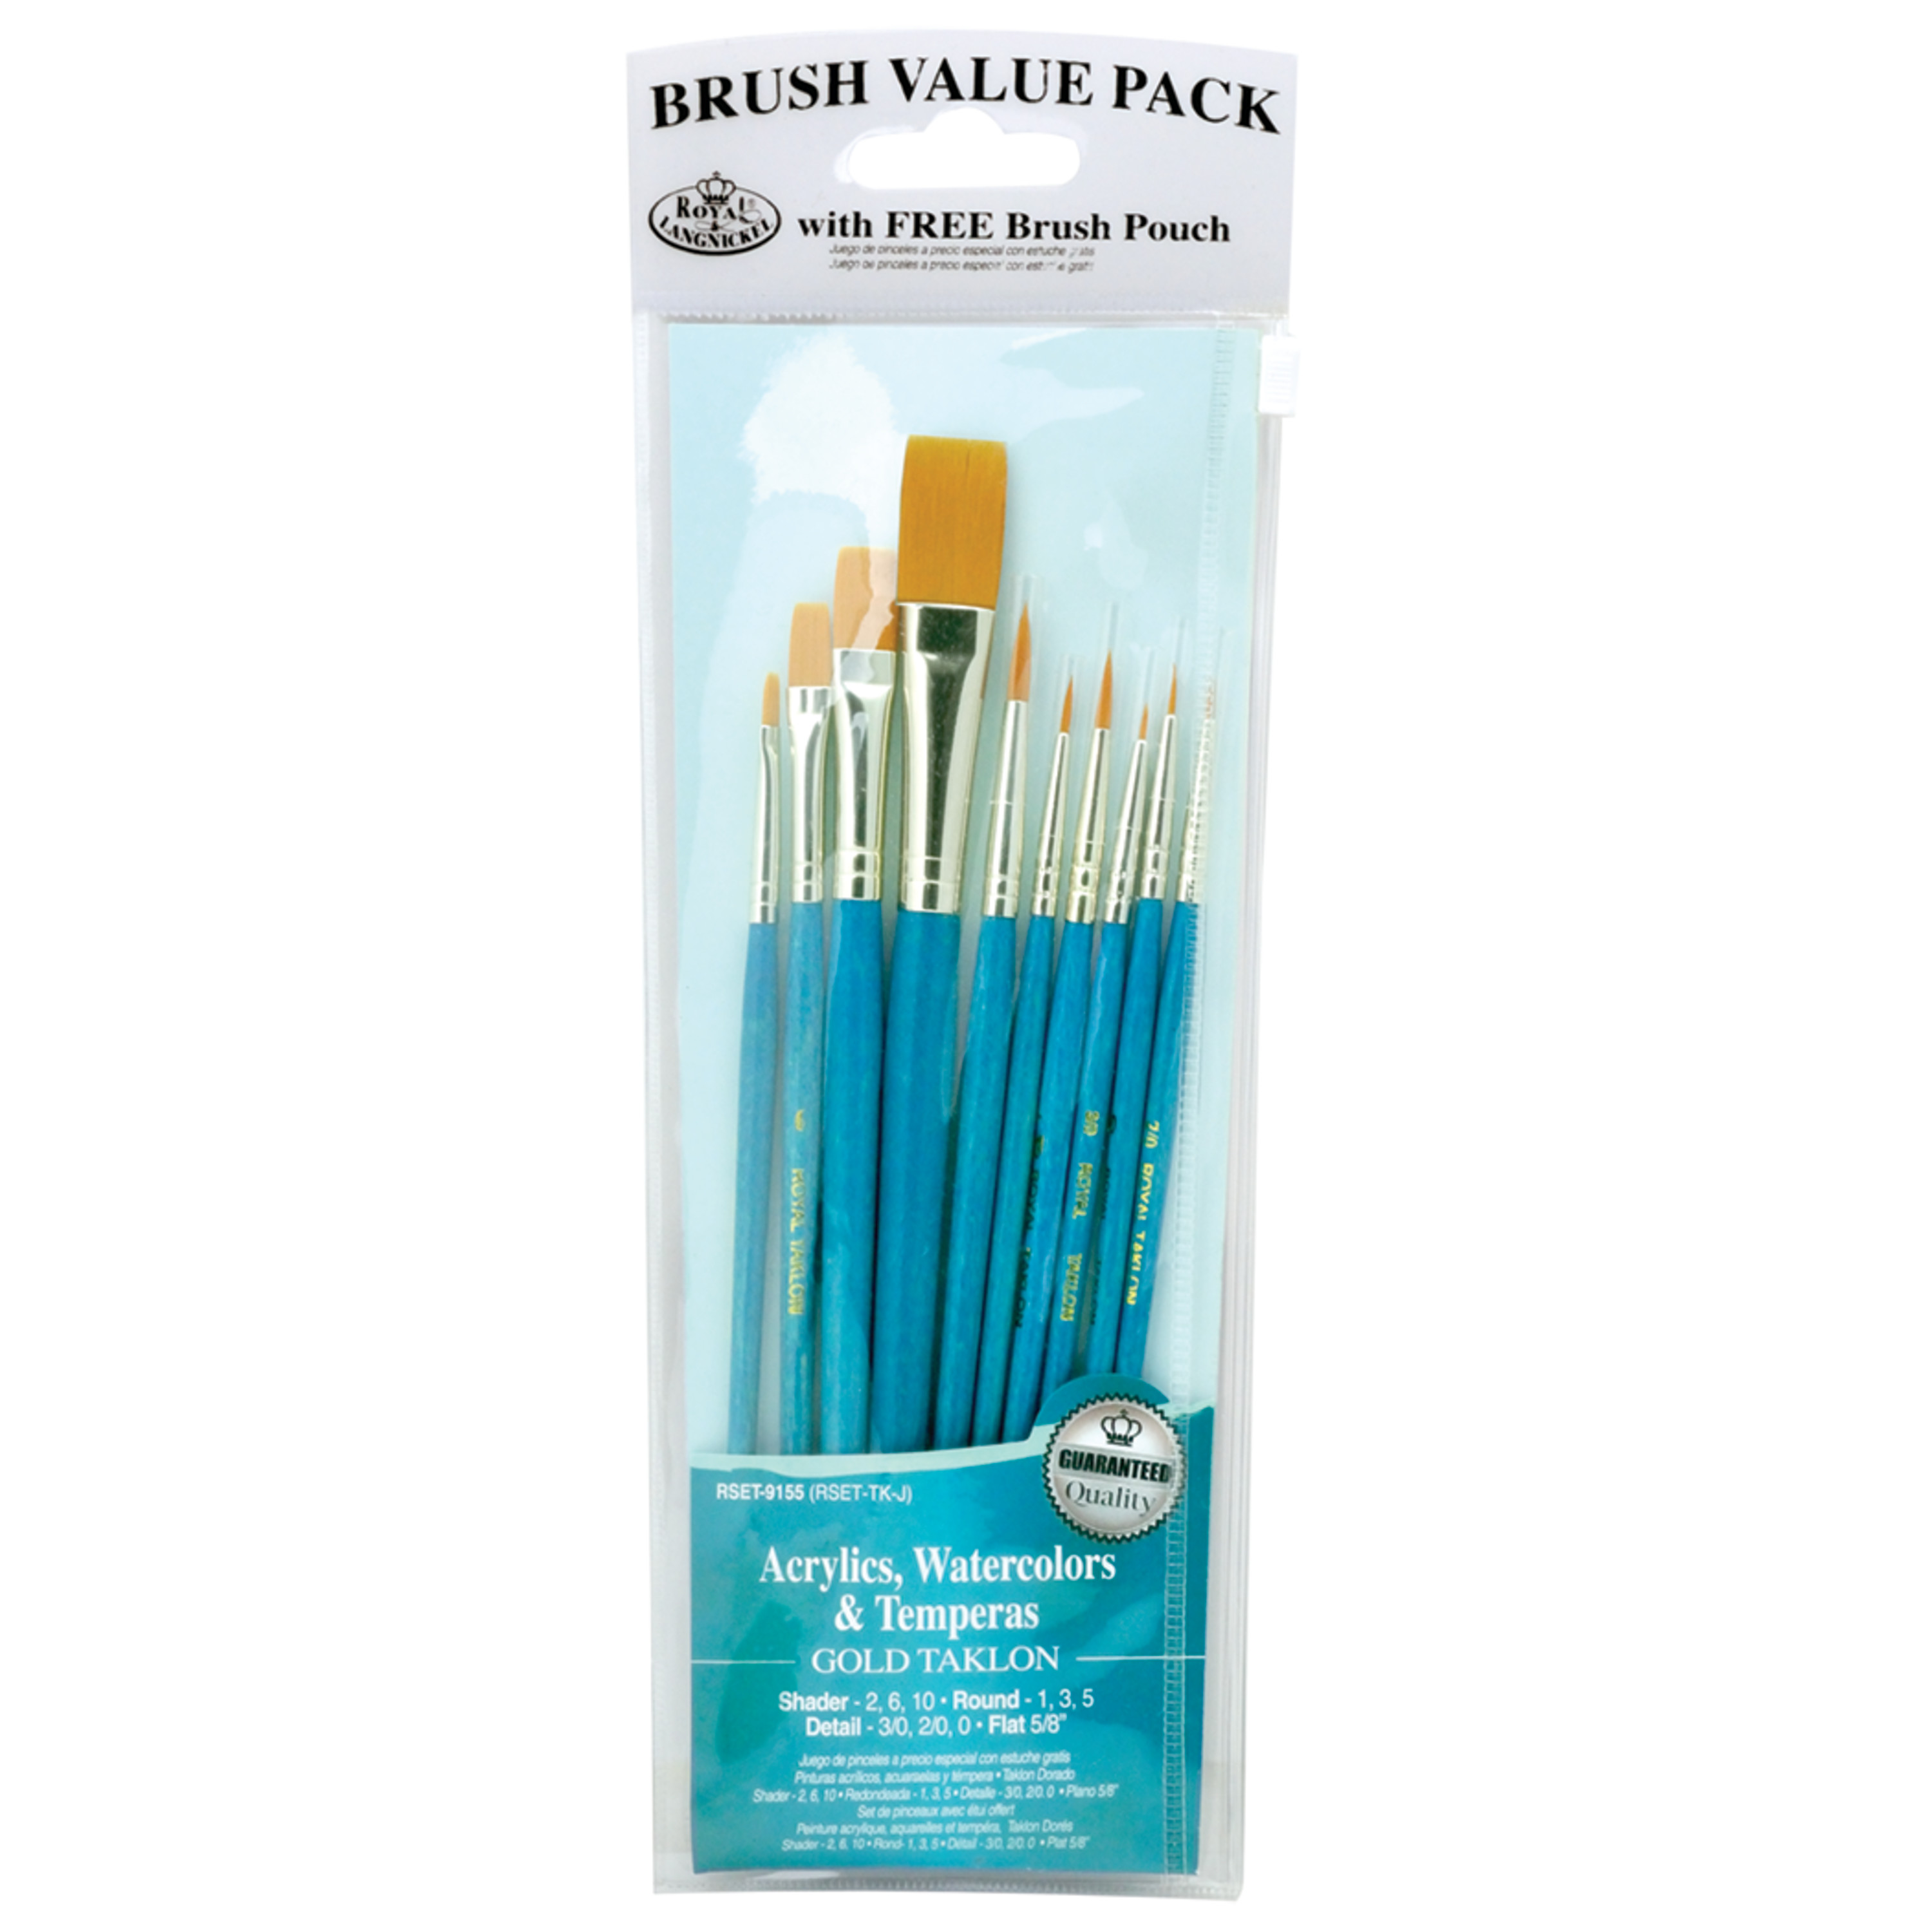 Royal & Langnickel Golden Talkon All Media Brush Set, 10 Piece